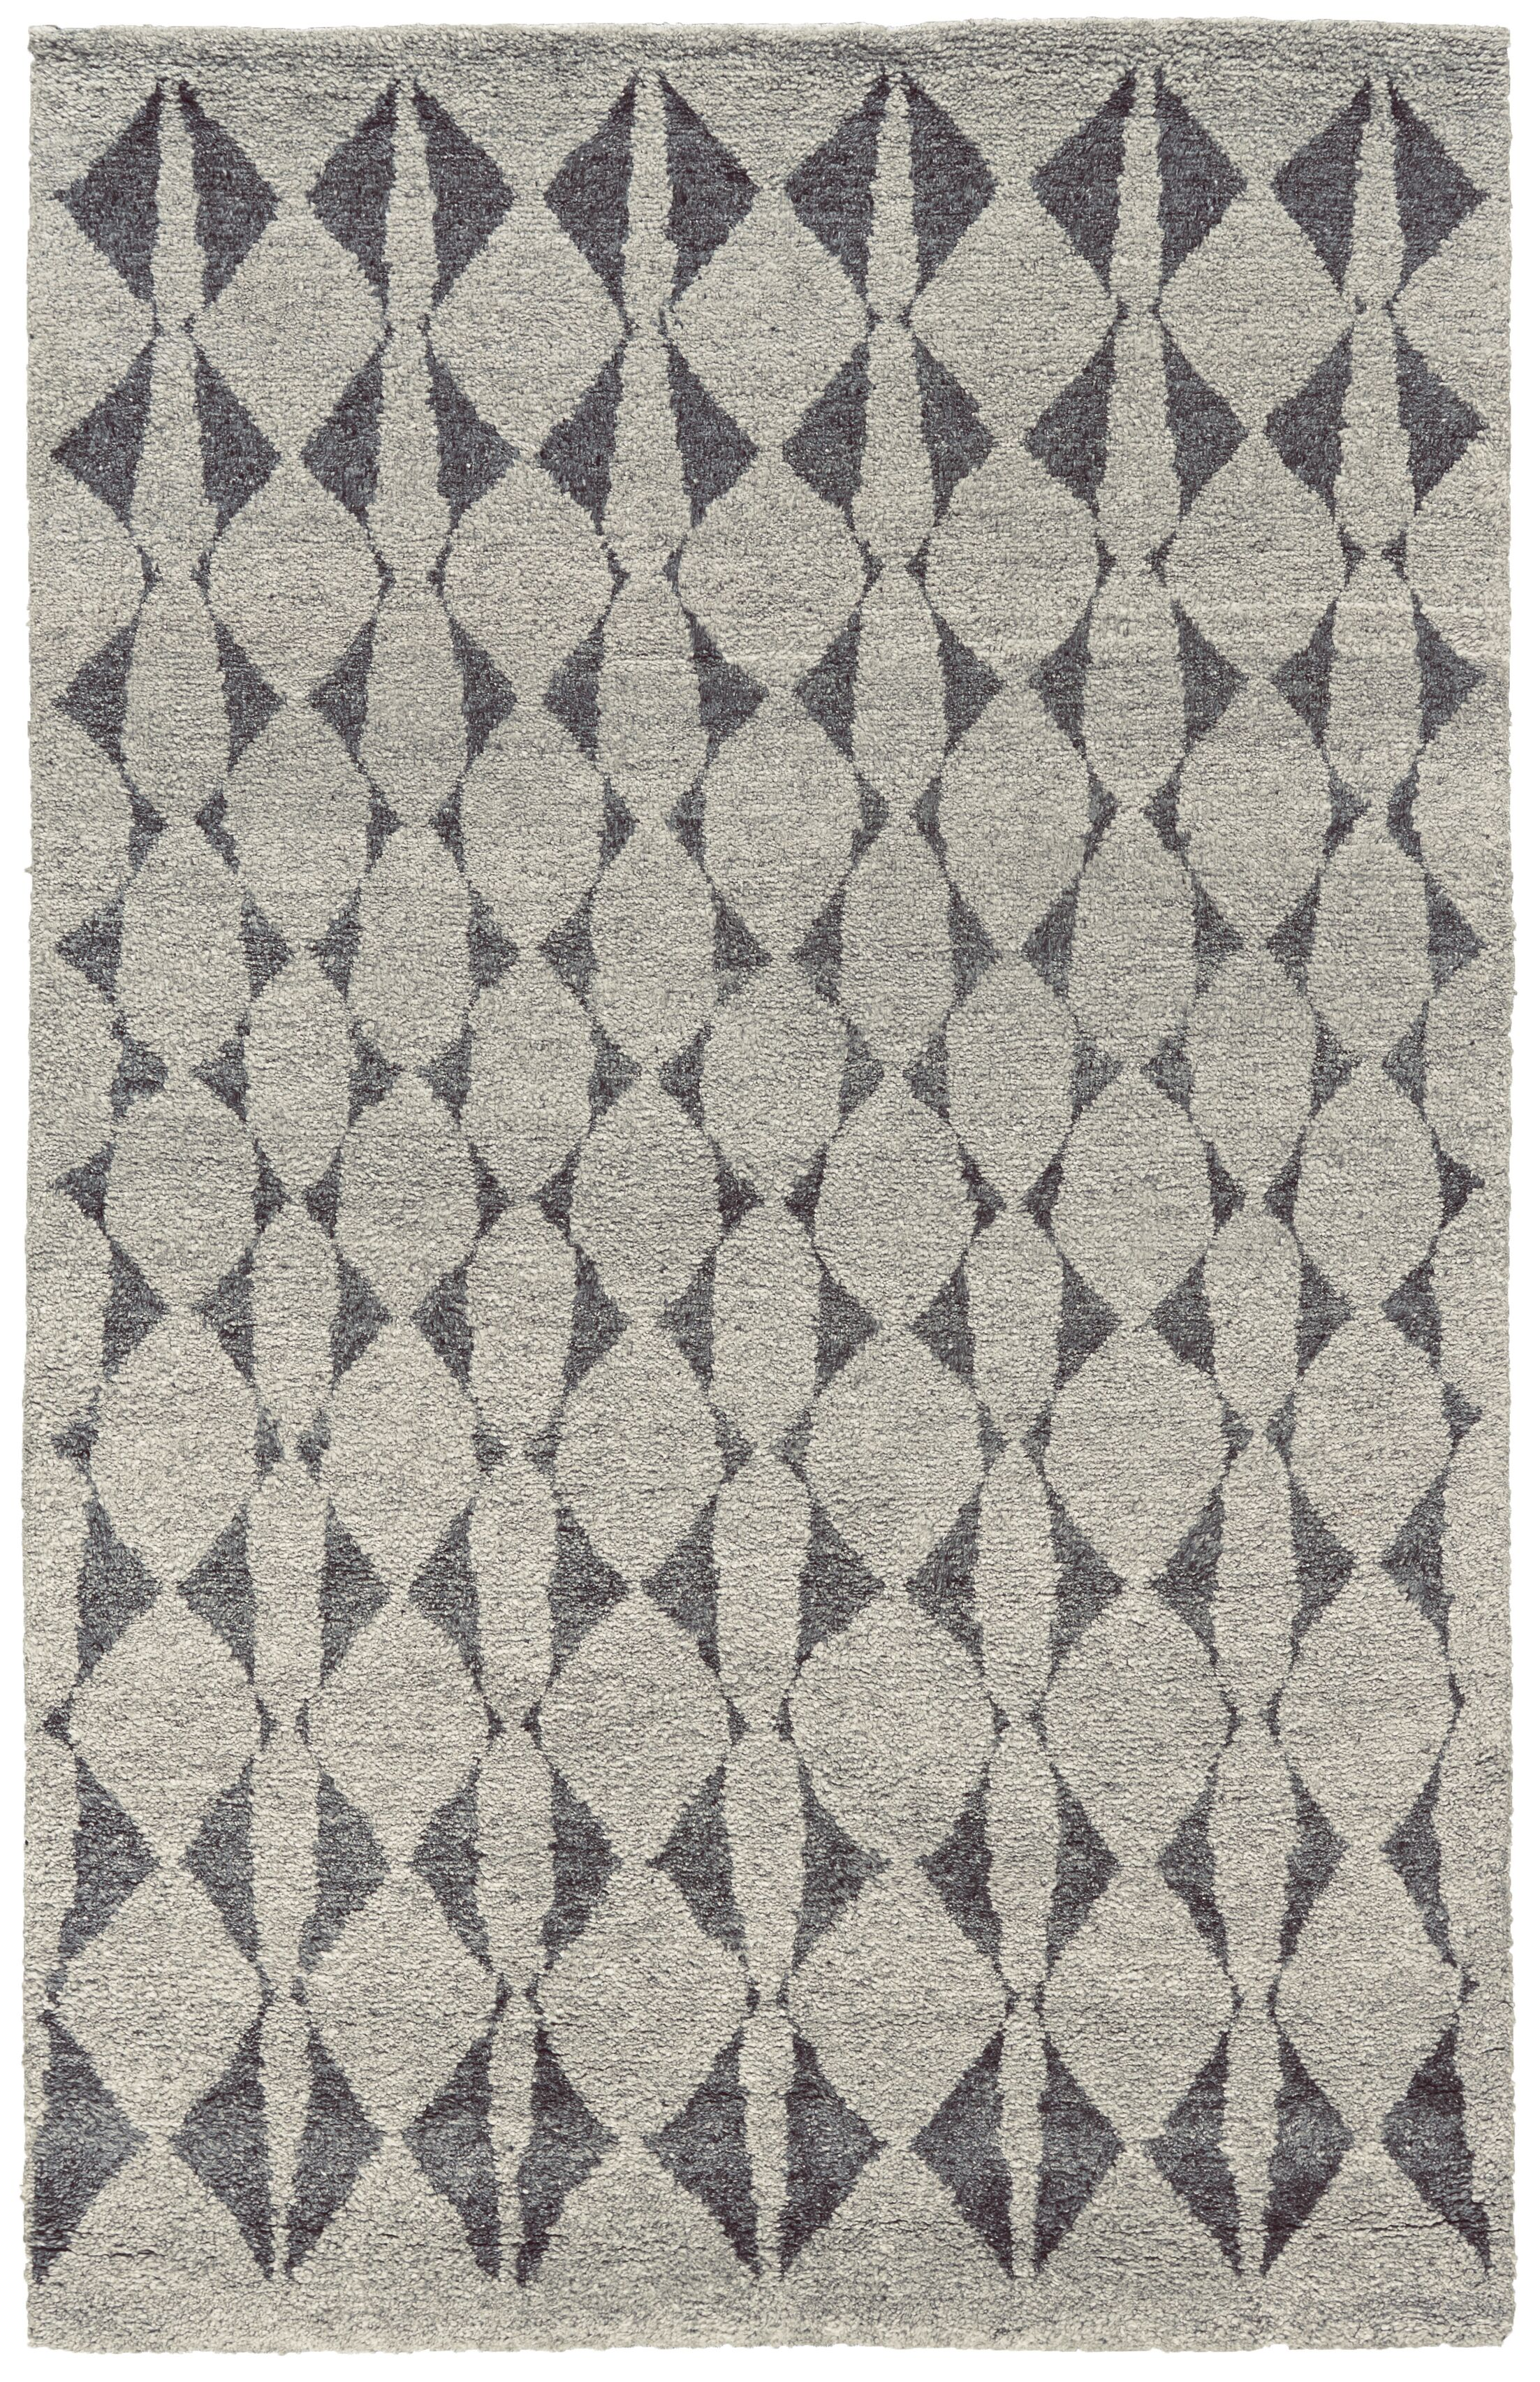 Octavia Hand-Knotted Gray Area Rug Rug Size: Rectangle 2' x 3'